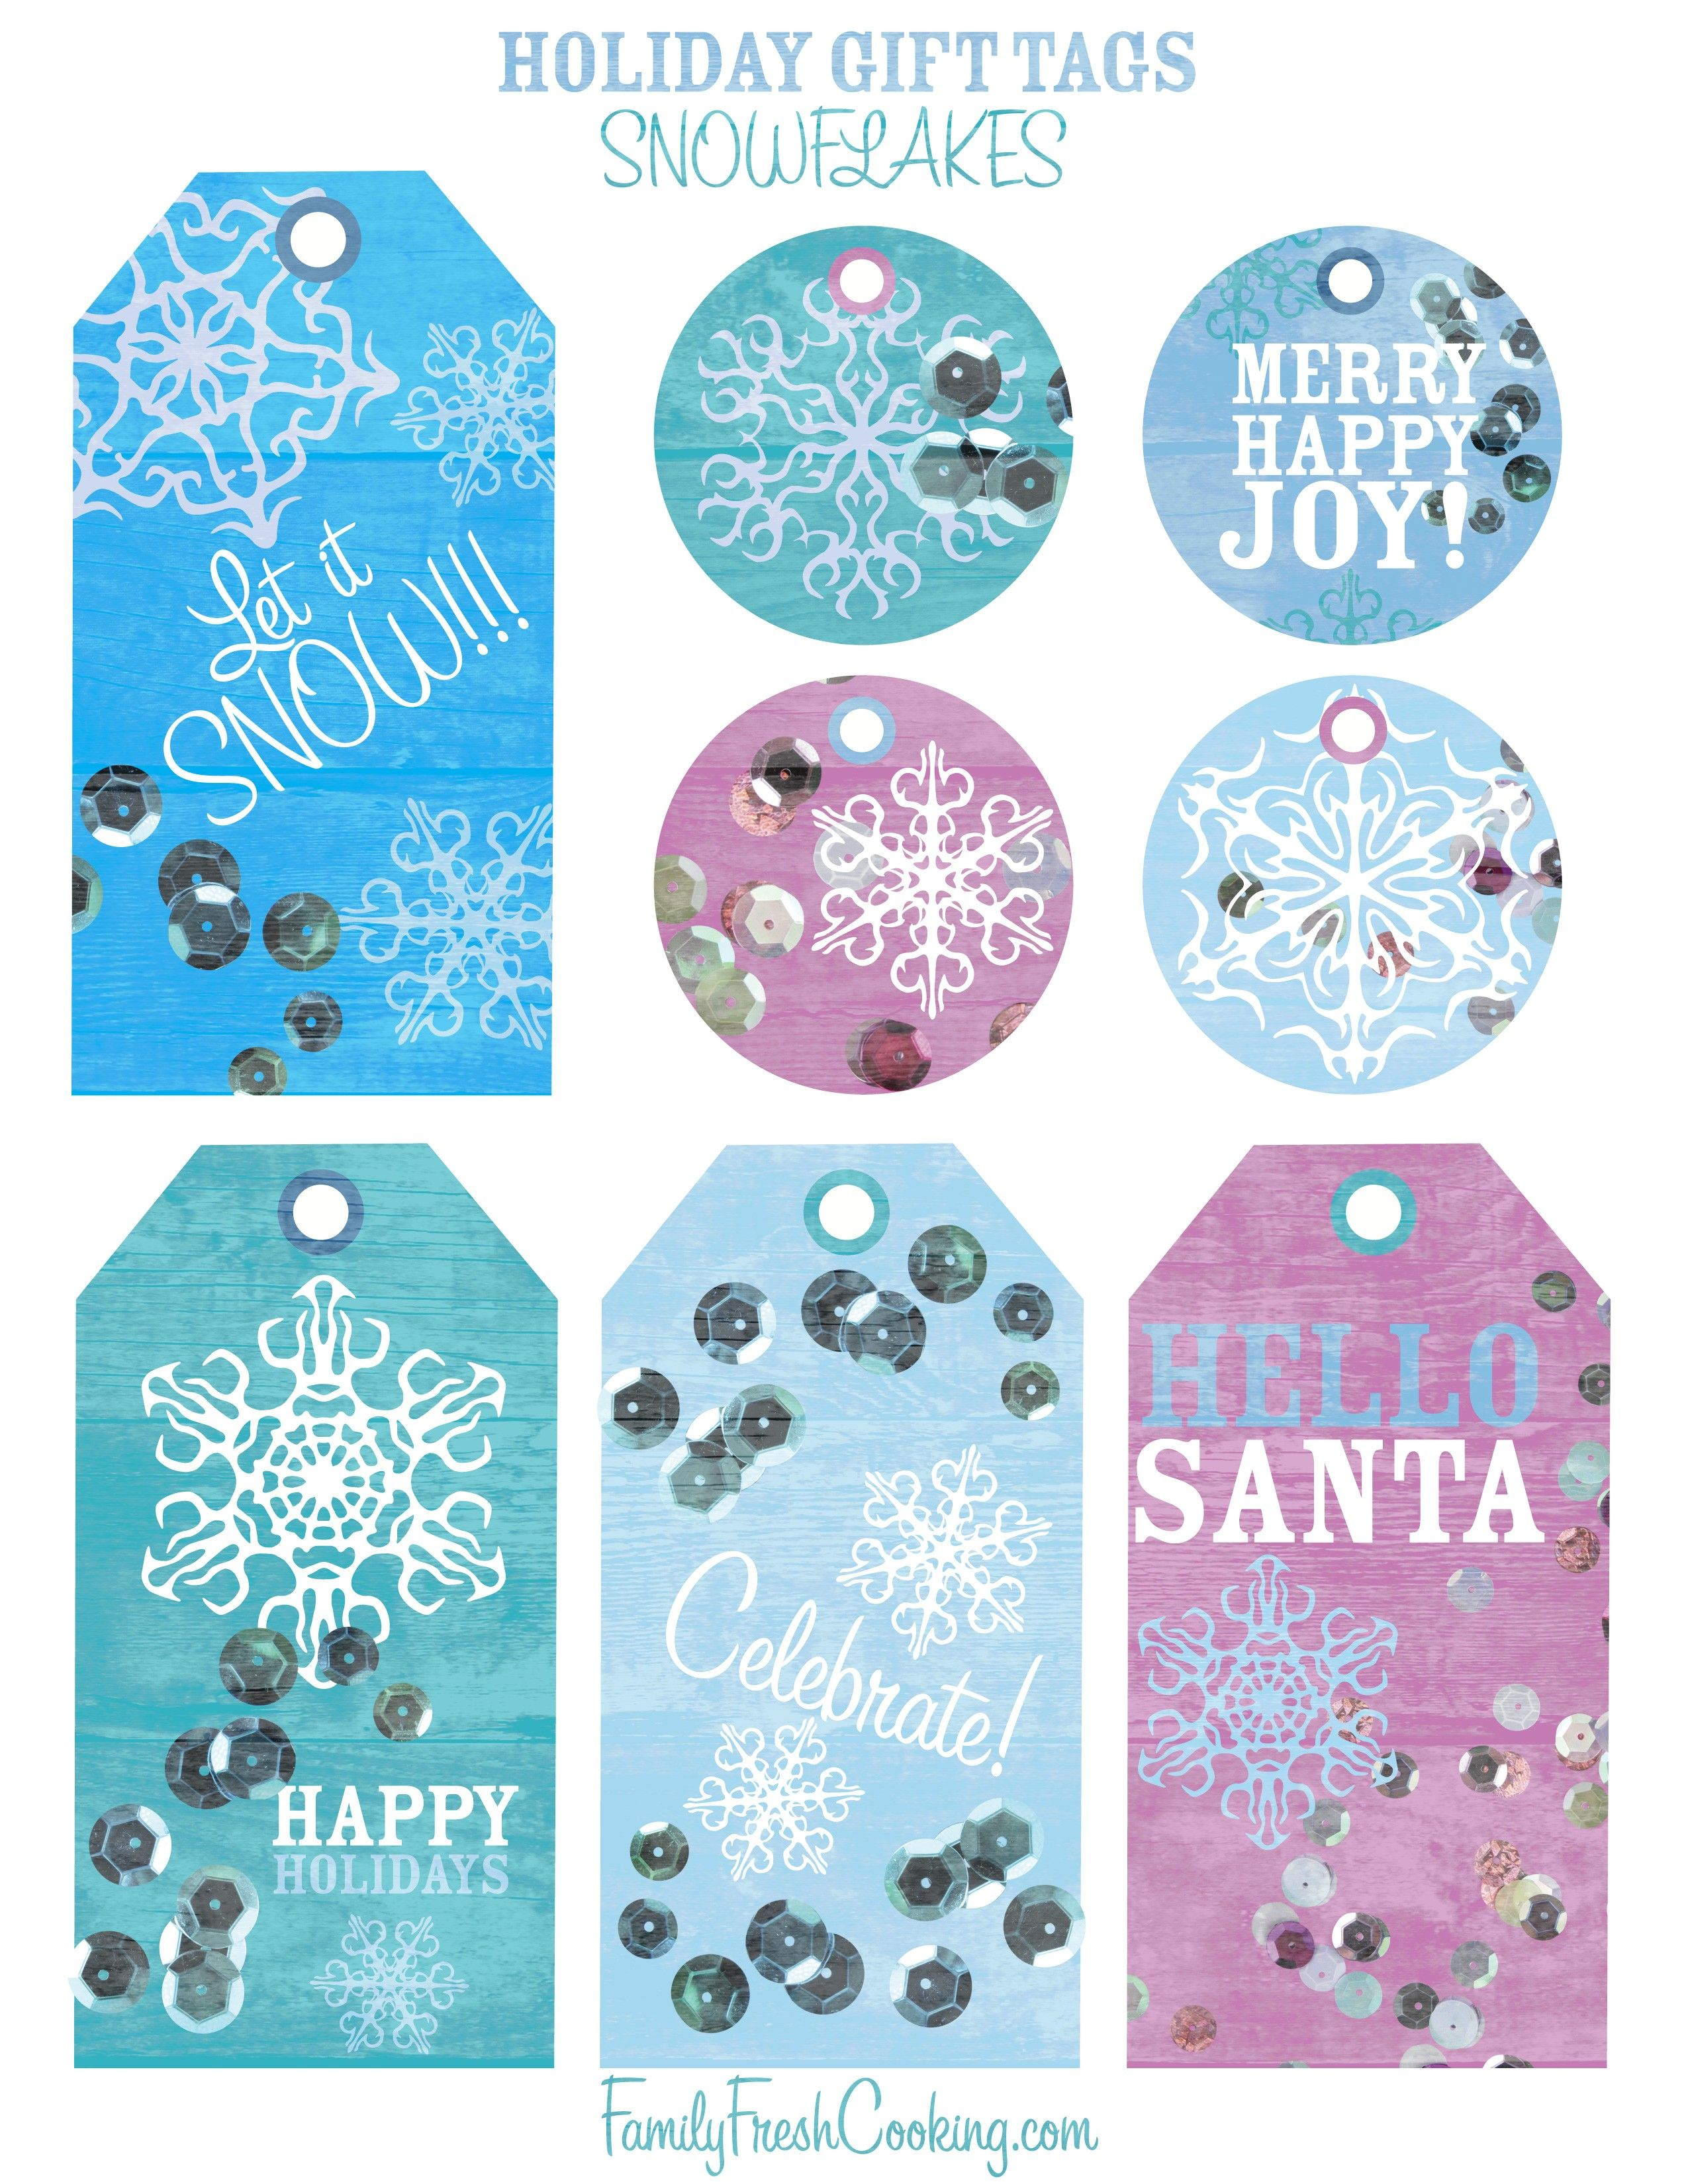 Snowflake gift tags 01g 25503300 a crafts pinterest snowflake gift tags 01g 25503300 negle Choice Image